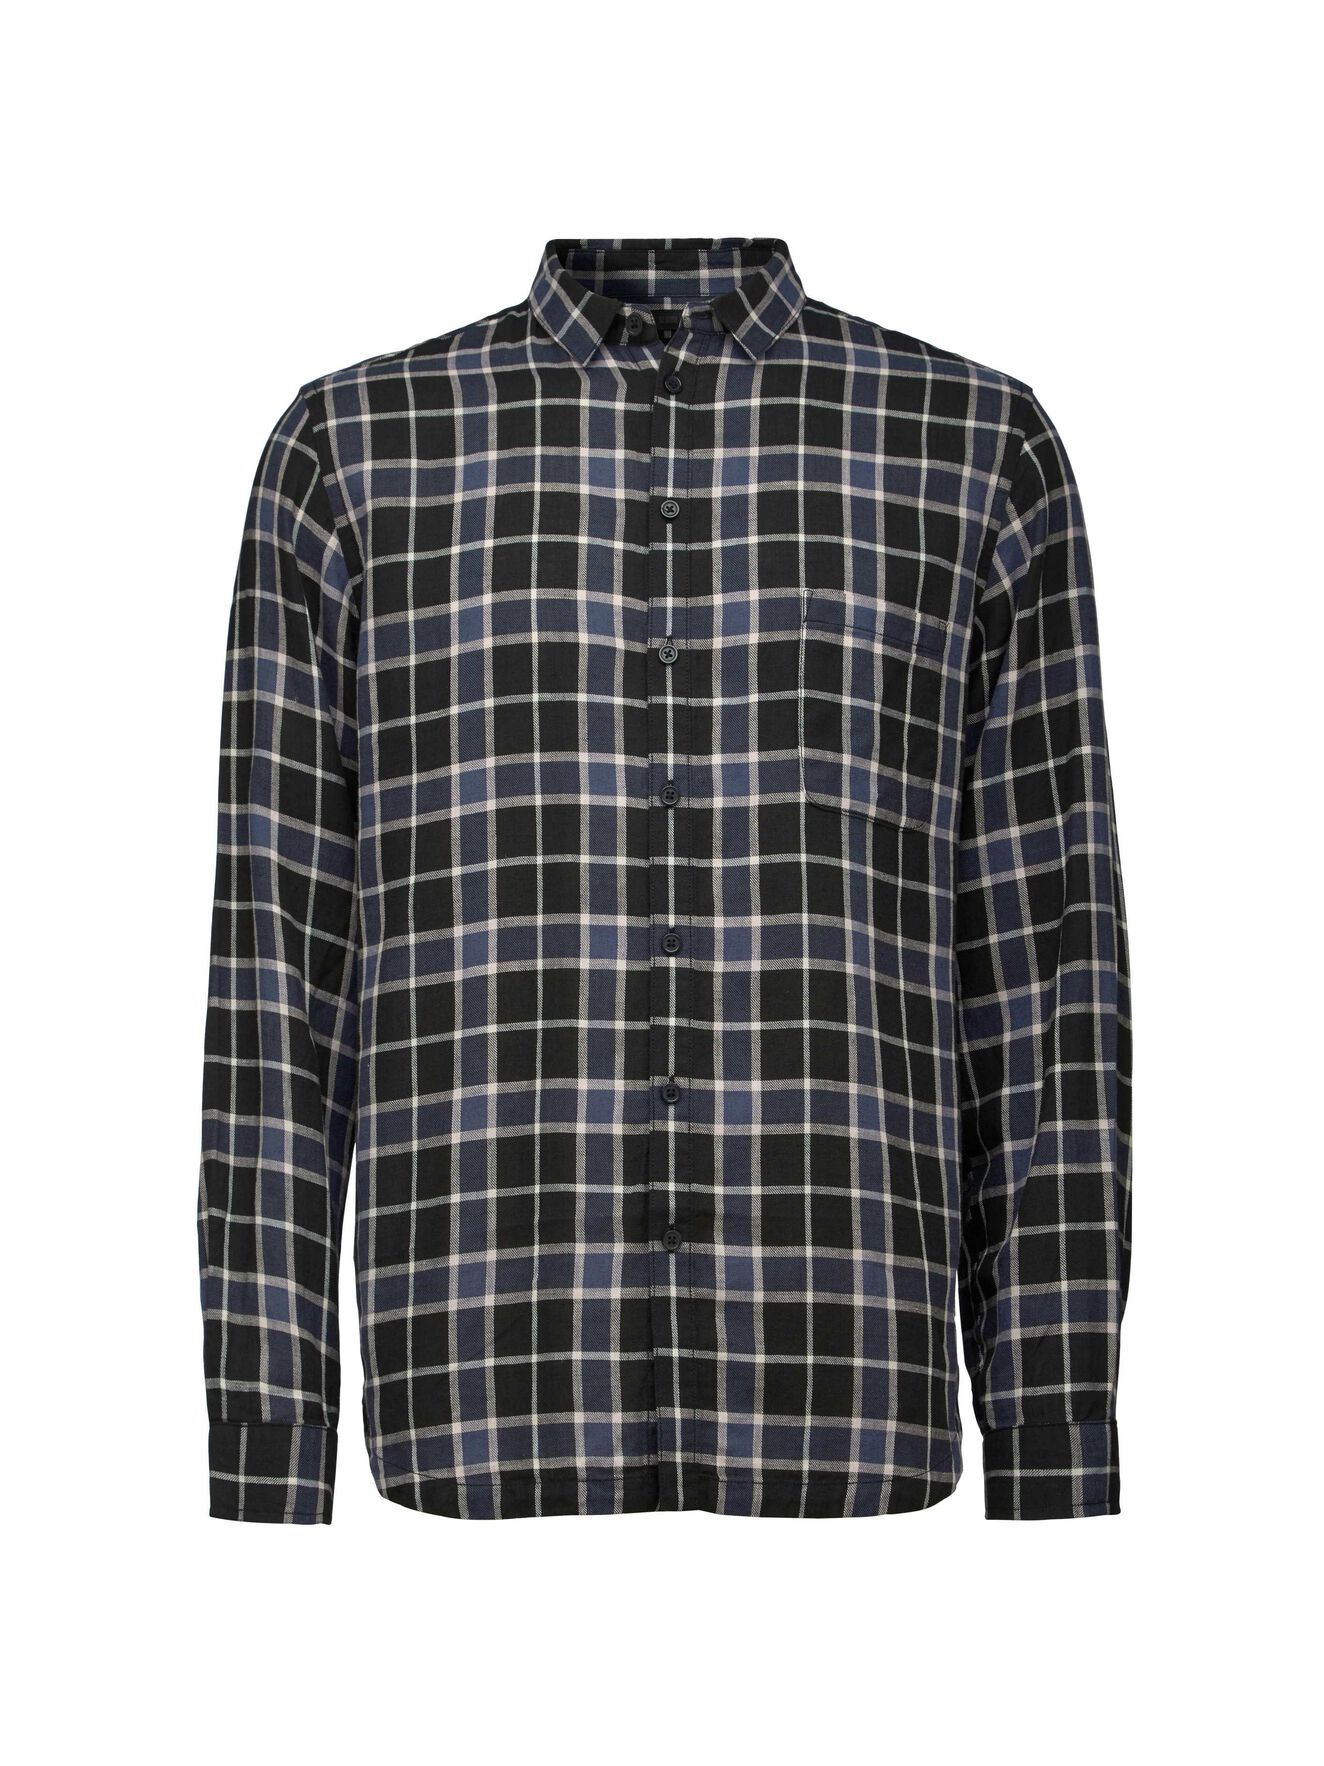 Mellow Shirt in Pattern from Tiger of Sweden